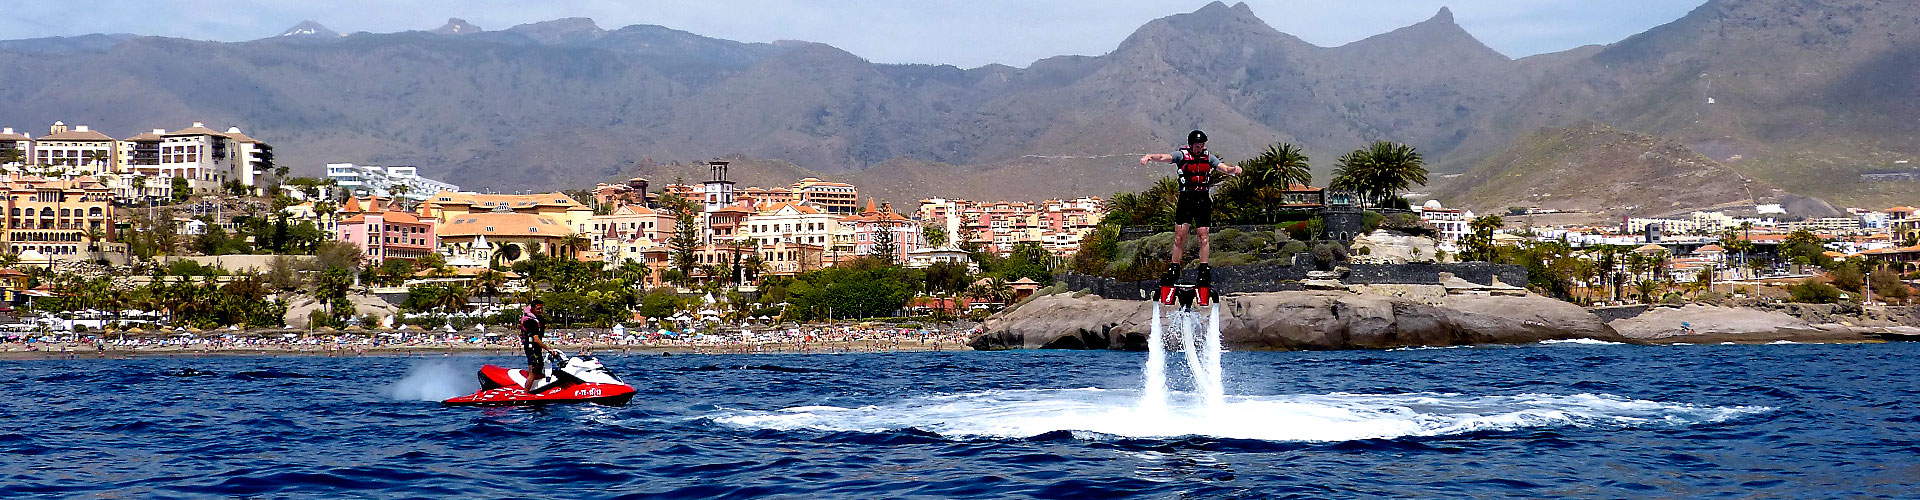 Water Sports in Tenerife